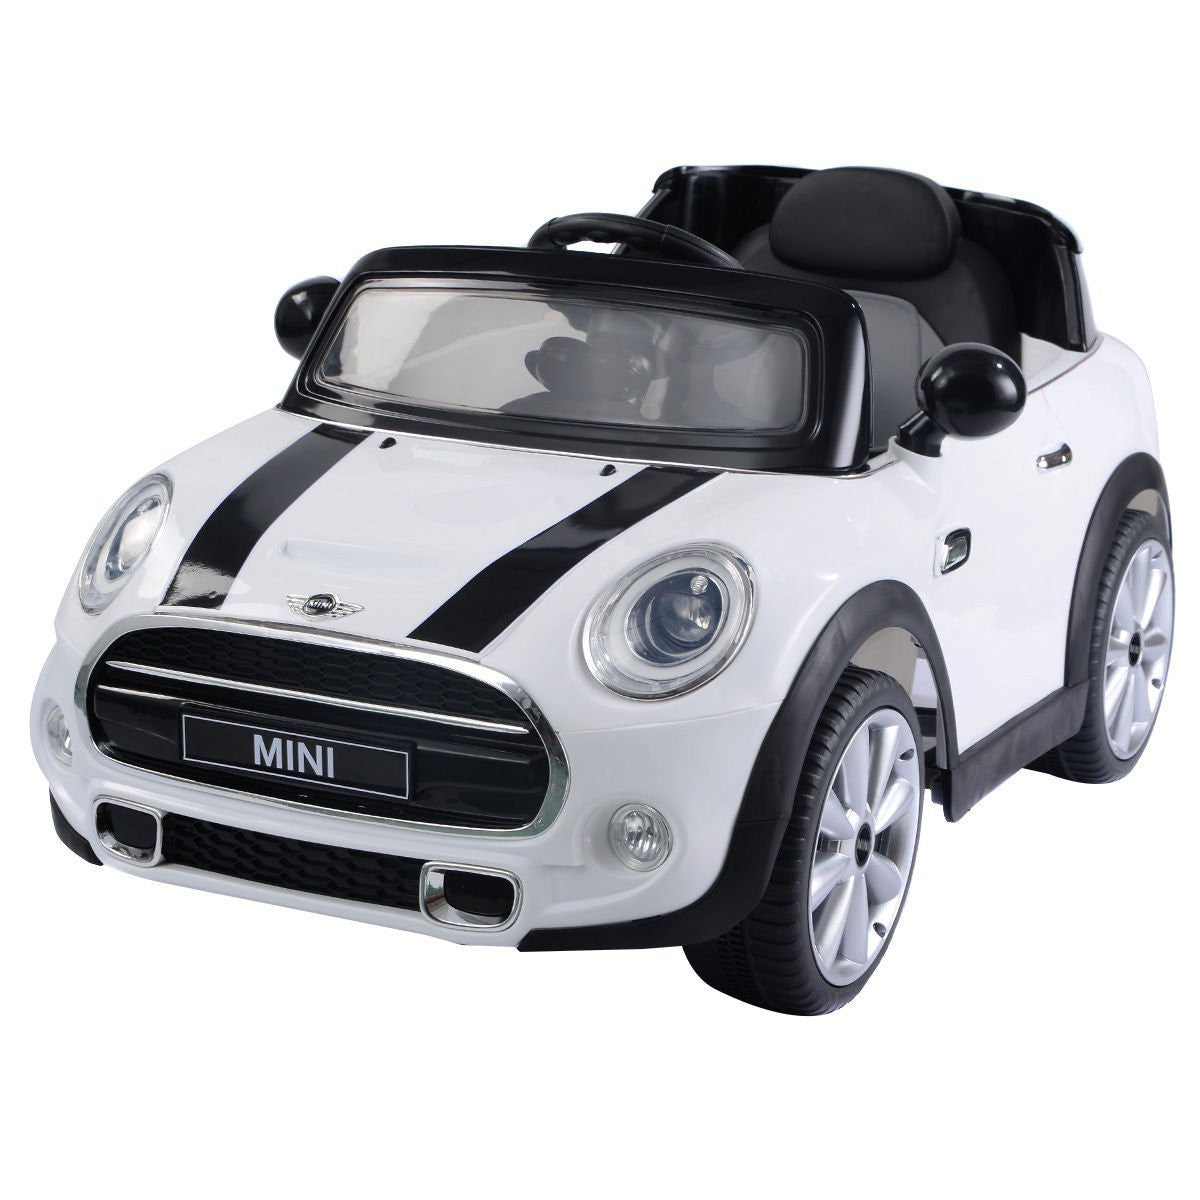 remote control trucks for toddlers with Mini Cooper Remote Control Ride On Car With Leather Seat on Stickbot Studio together with Electric Cars For Kids as well 324470348133737271 moreover 2015 08 01 archive likewise Top Toys At Disney Parks For The Holidays.